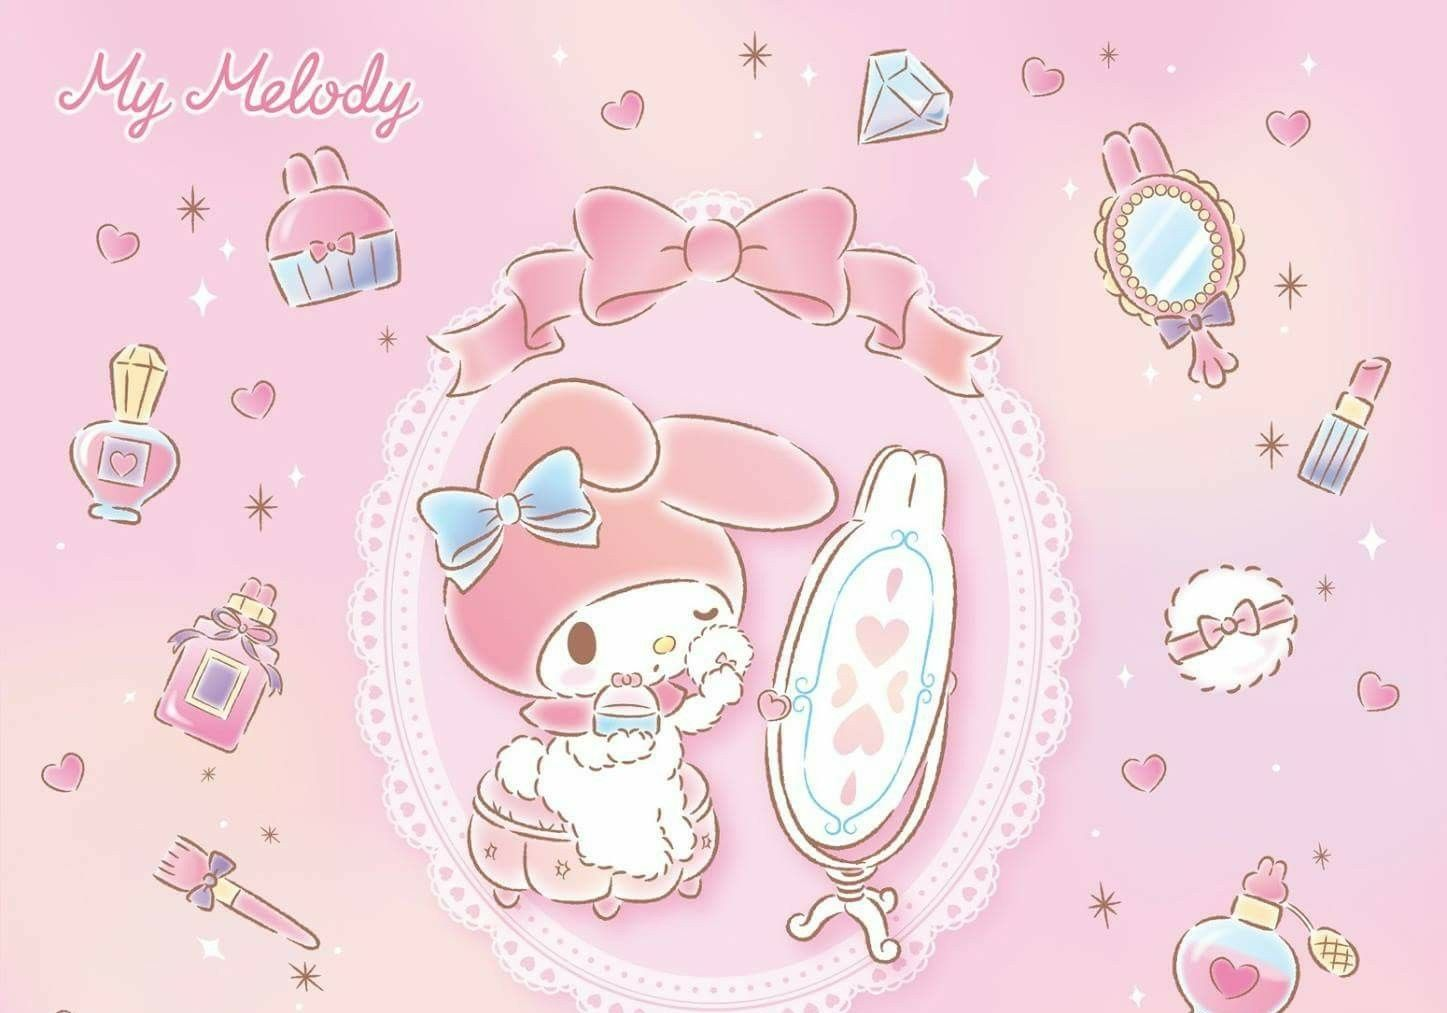 My Melody | My melody wallpaper, Phone themes, My melody